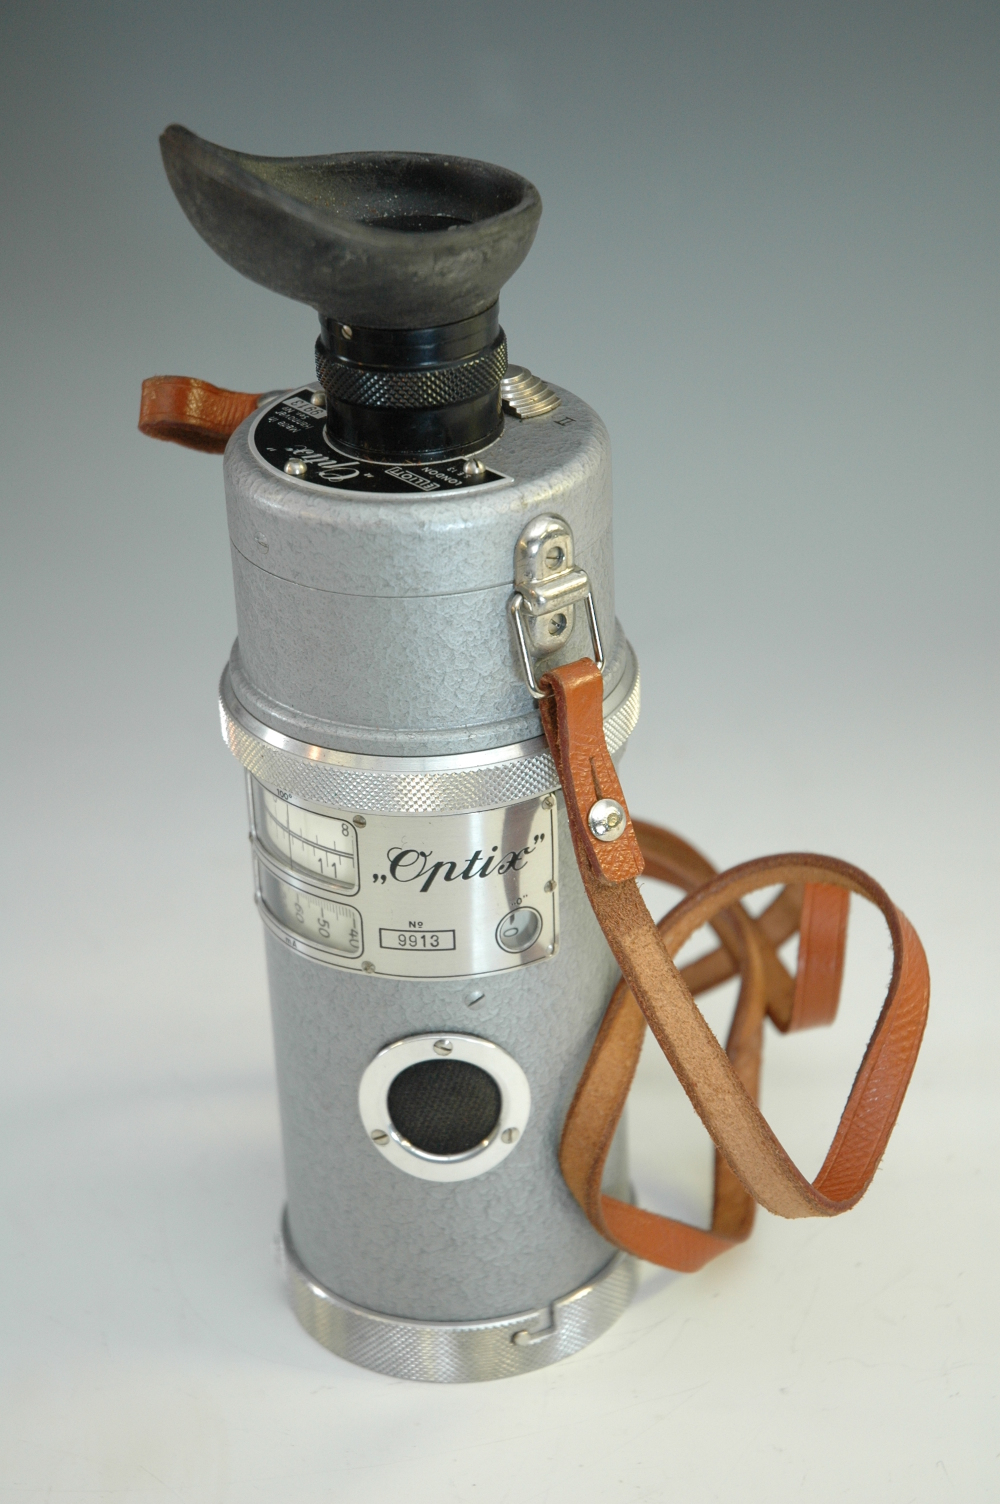 preview image for Optix Optical Pyrometer with case and accessories, by Elliott Brothers, London, Made in Hanover, c.1960